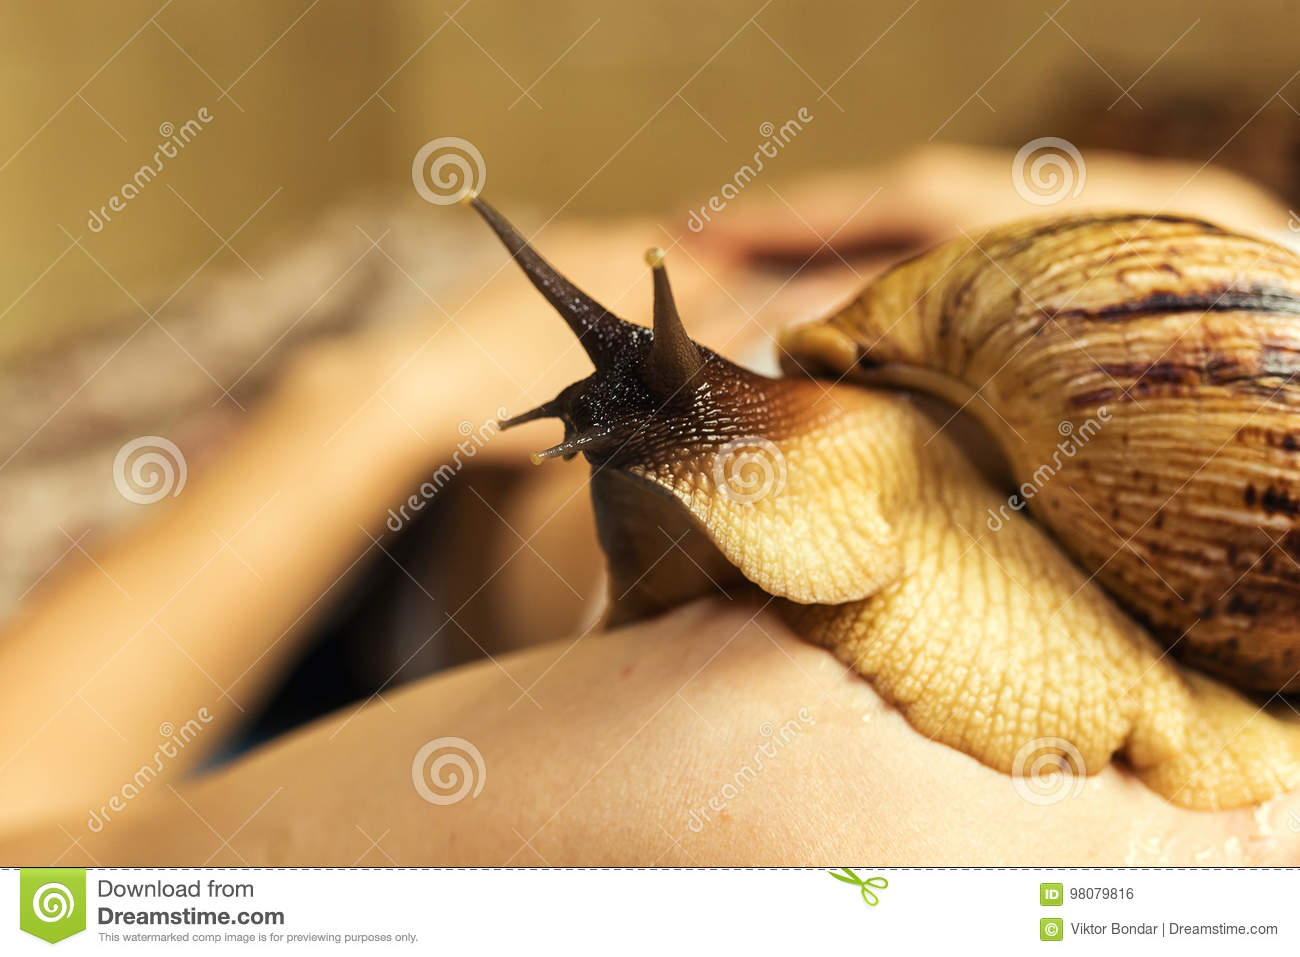 Achatina snails in cosmetology: how to use 93